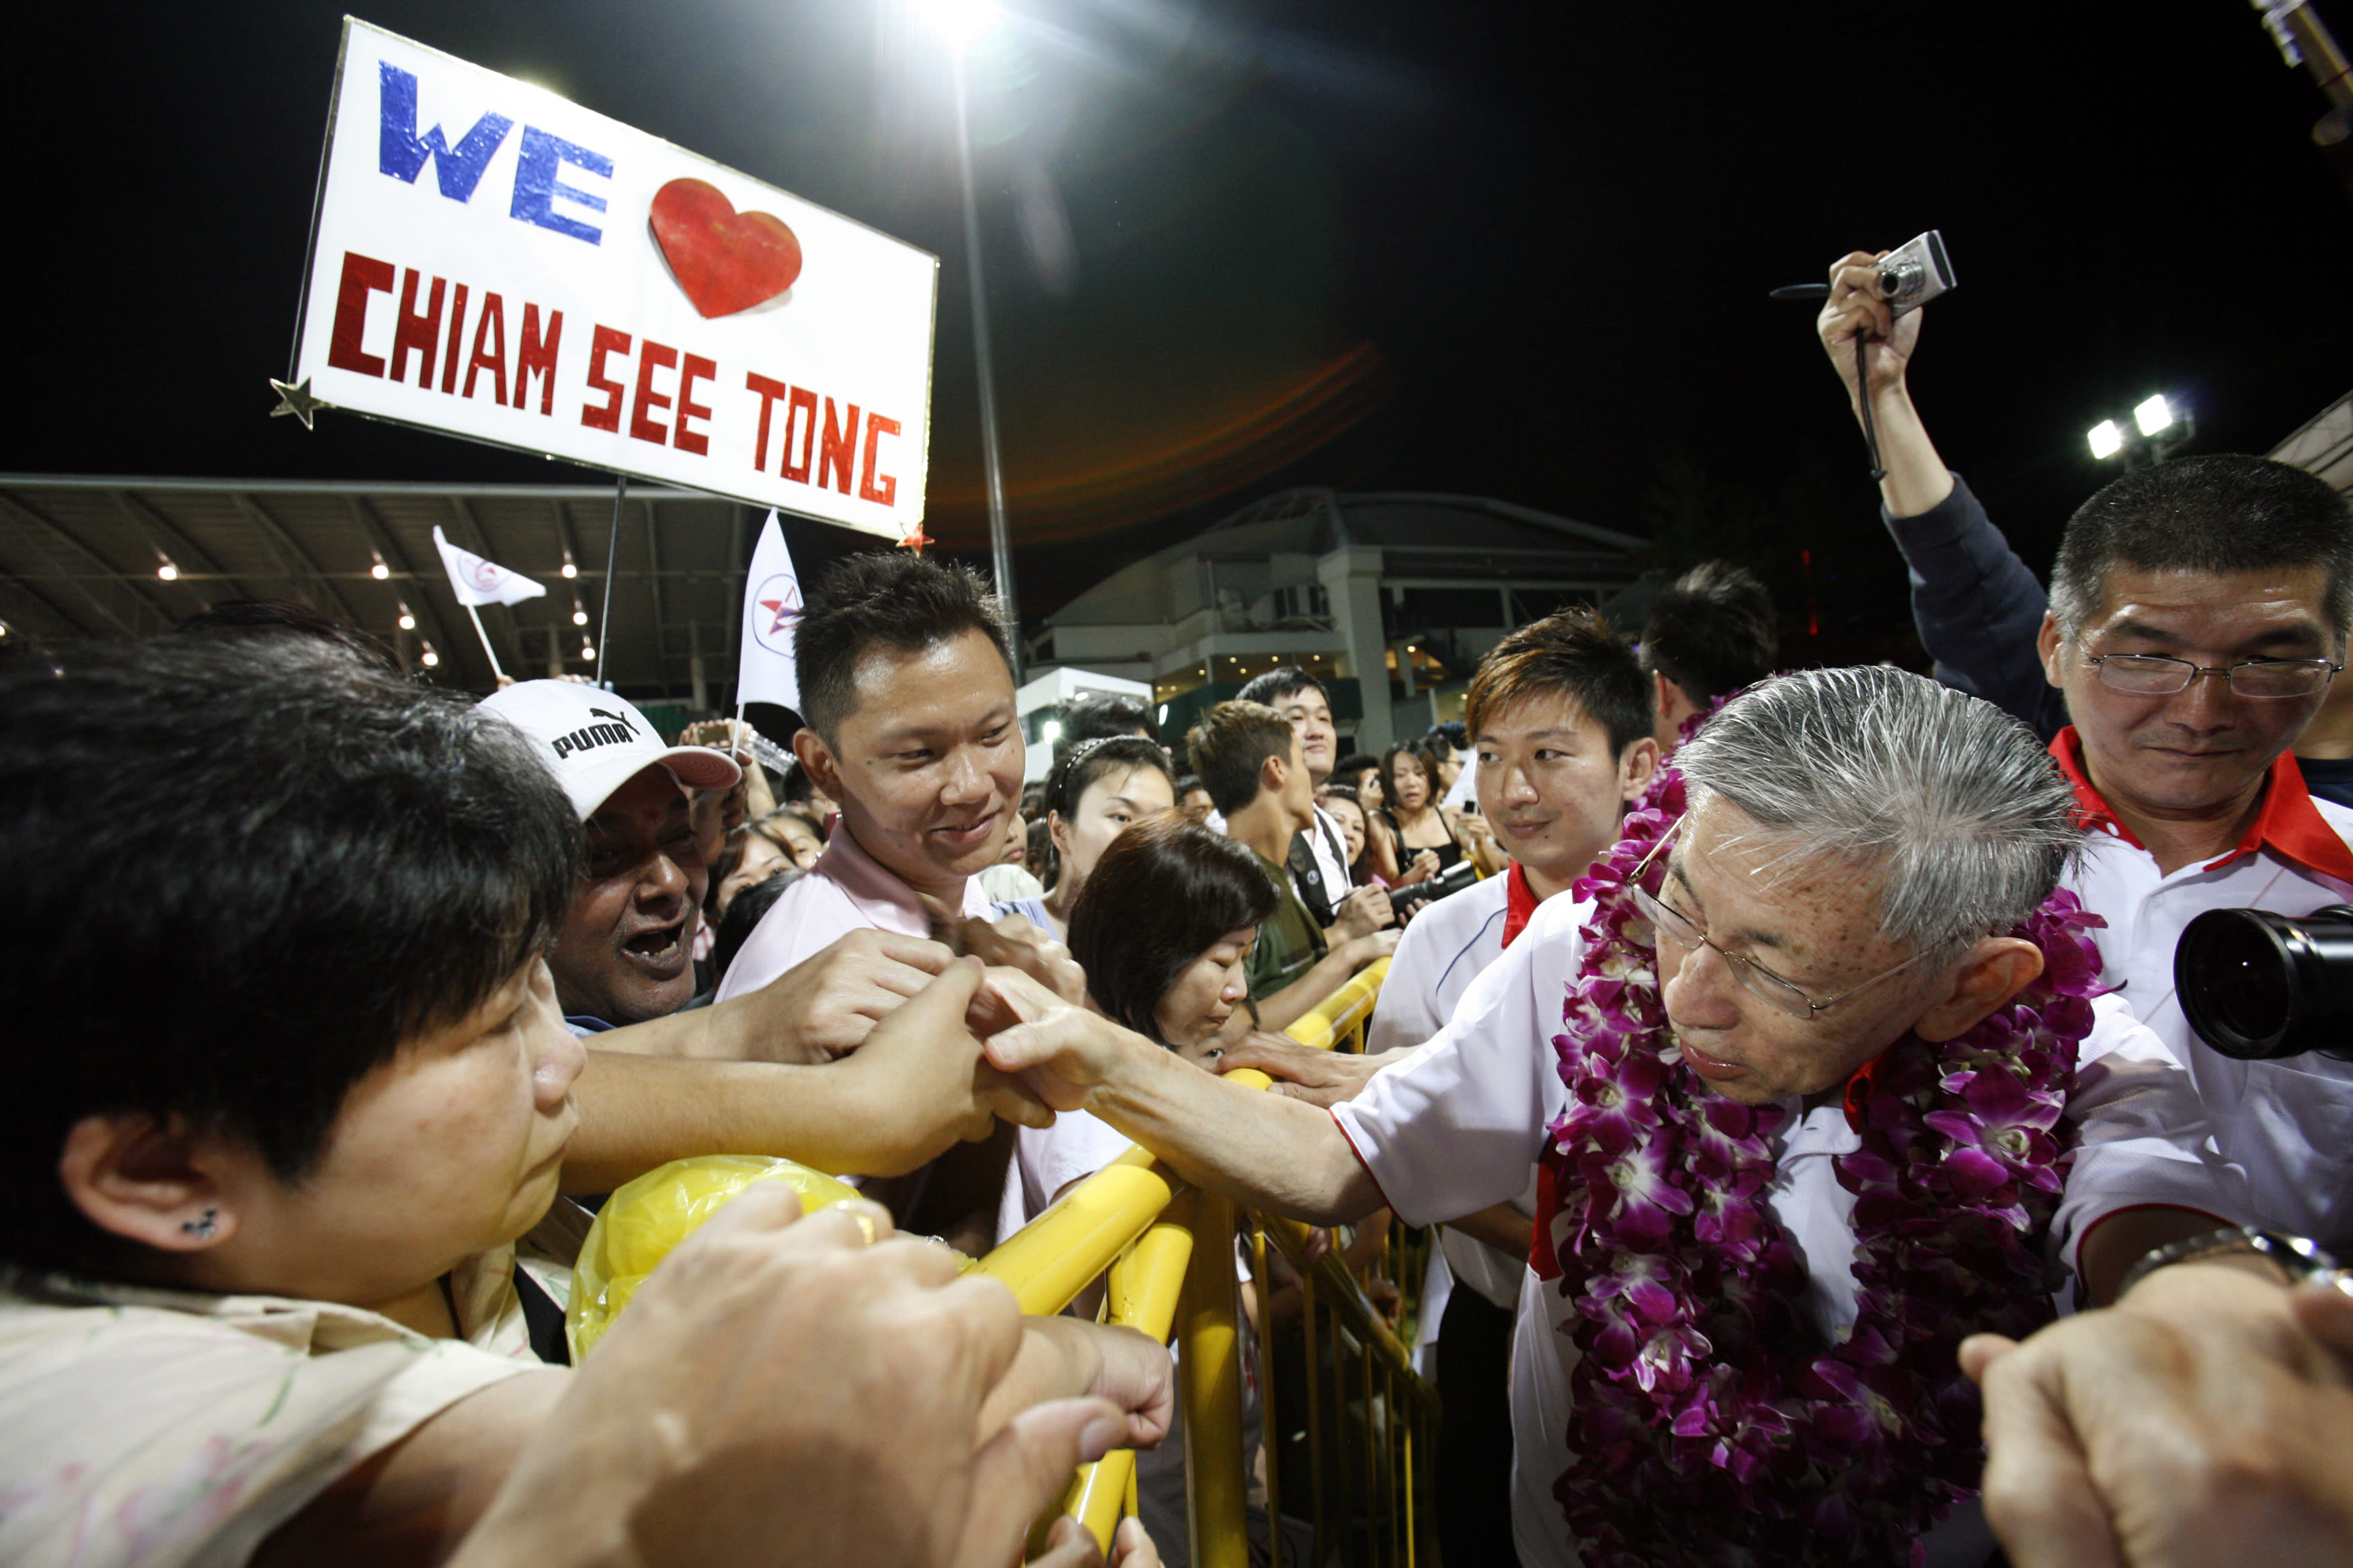 Chiam See Tong 'changed the face of the opposition' in Singapore: analyst